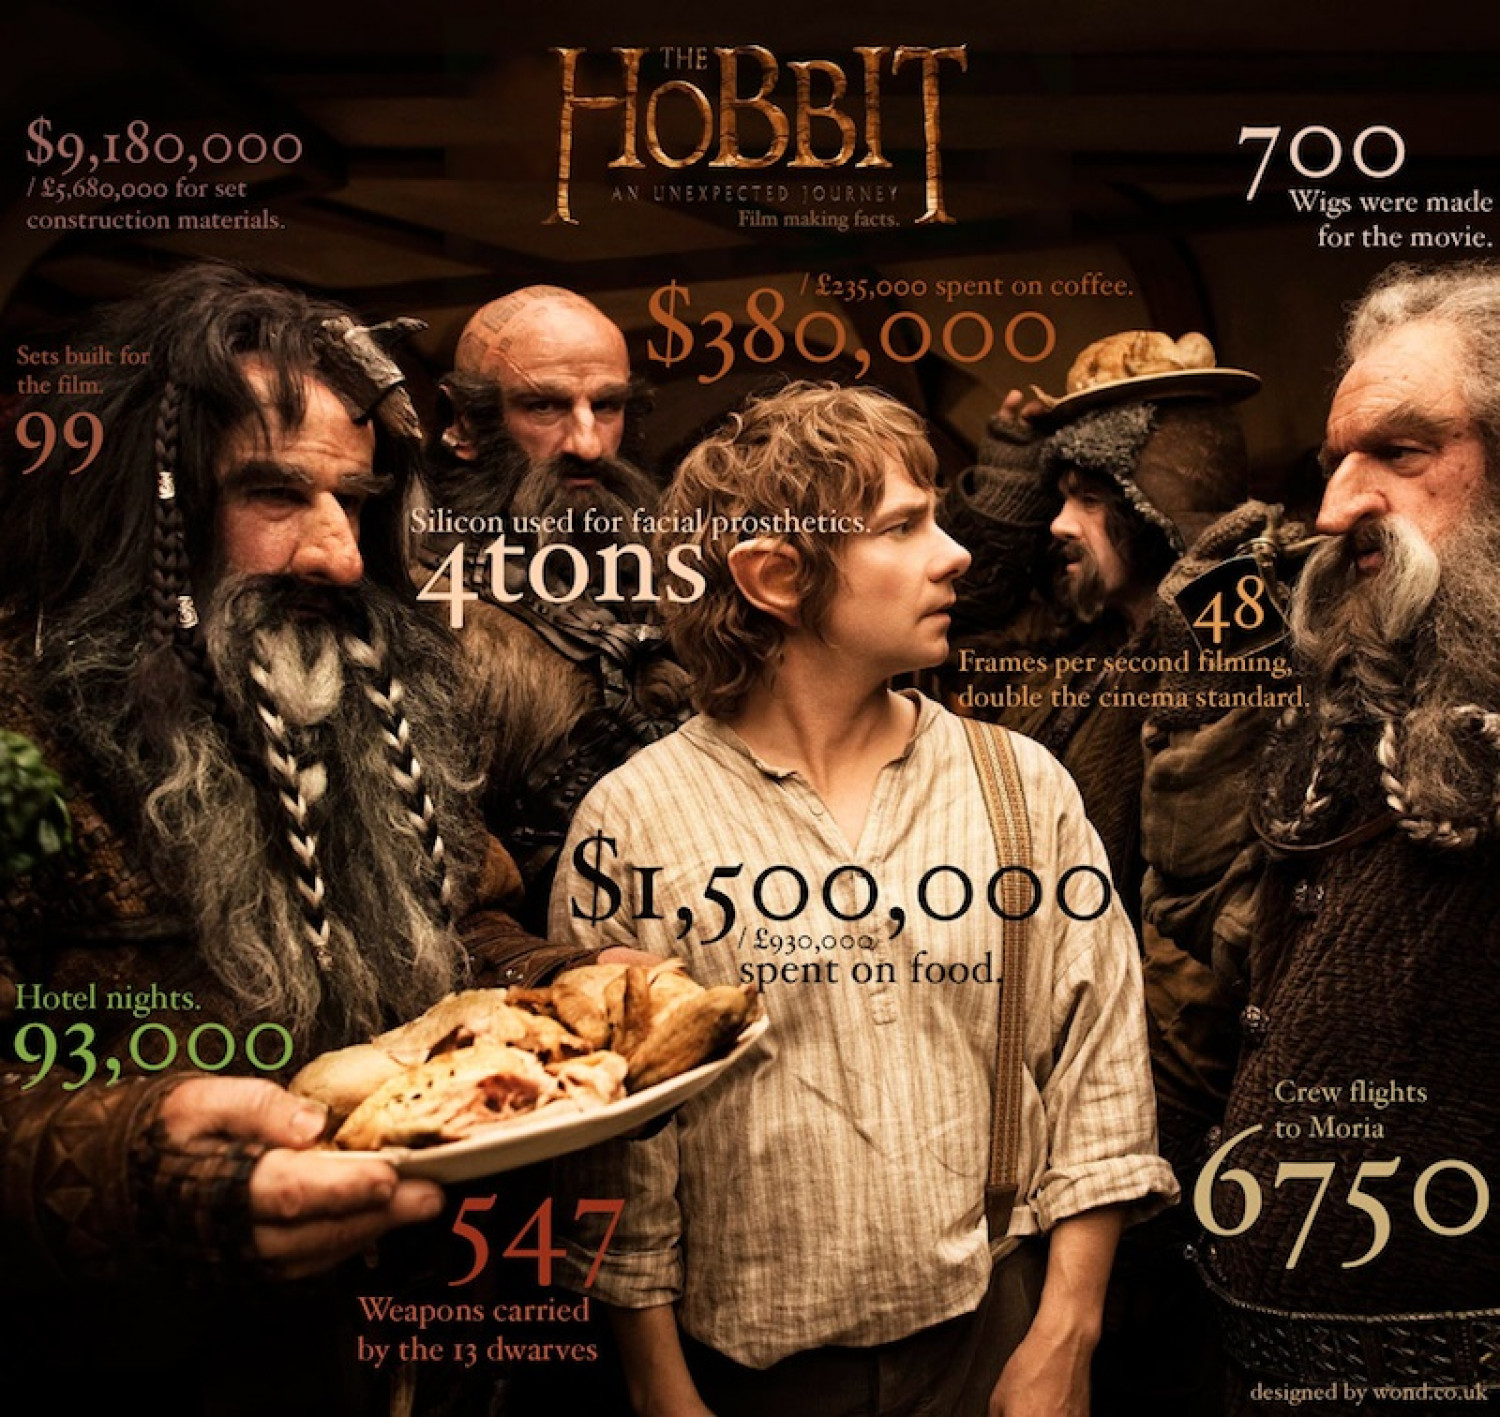 The Hobbit: Film Making Facts Infographic